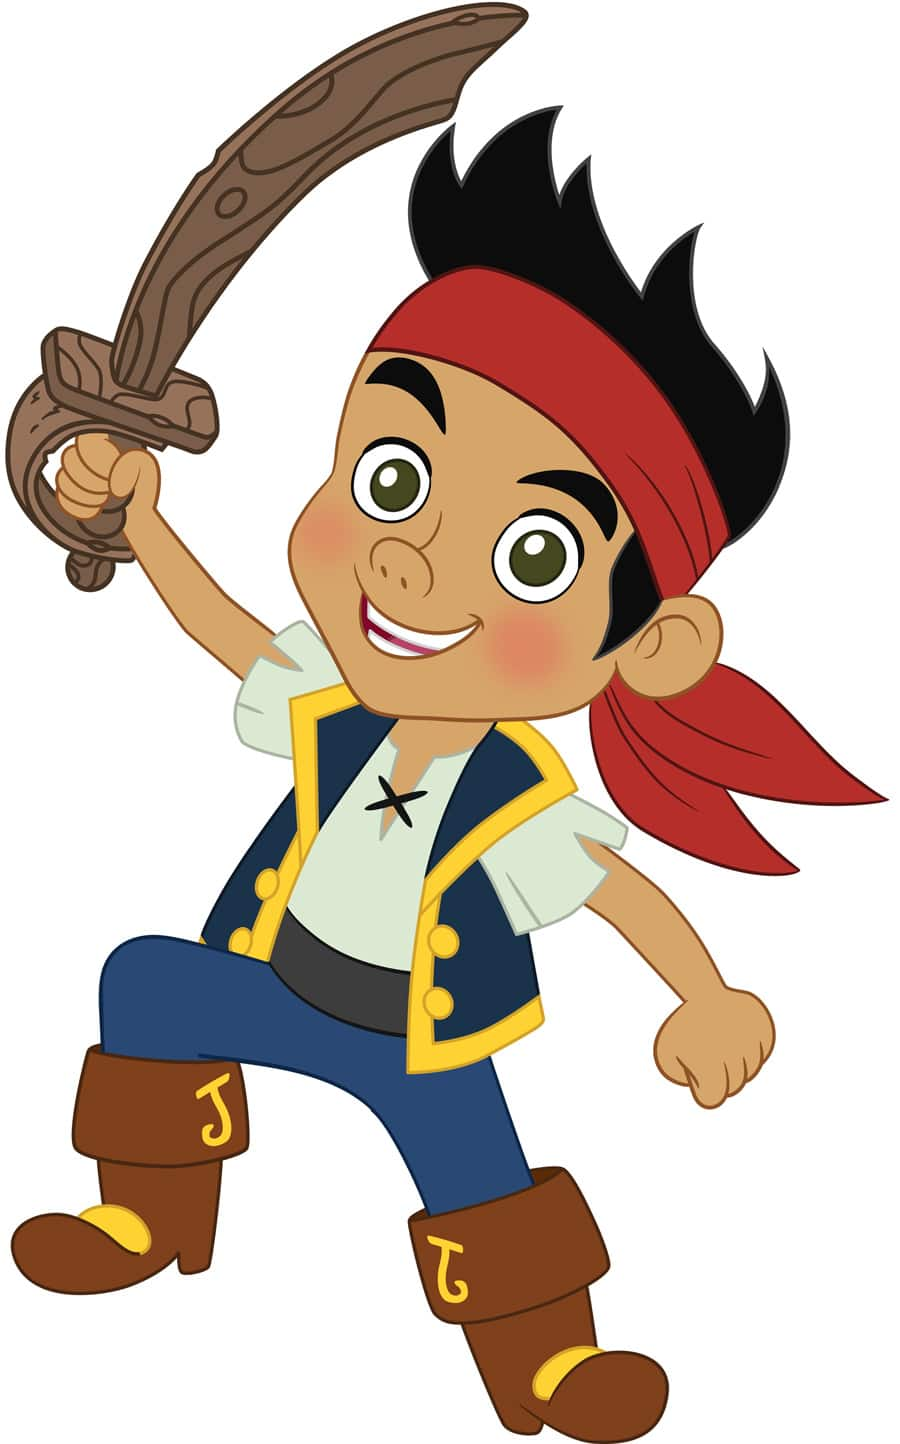 Never Land Pirate Jake Is Coming To Disney Parks Disney Parks Blog